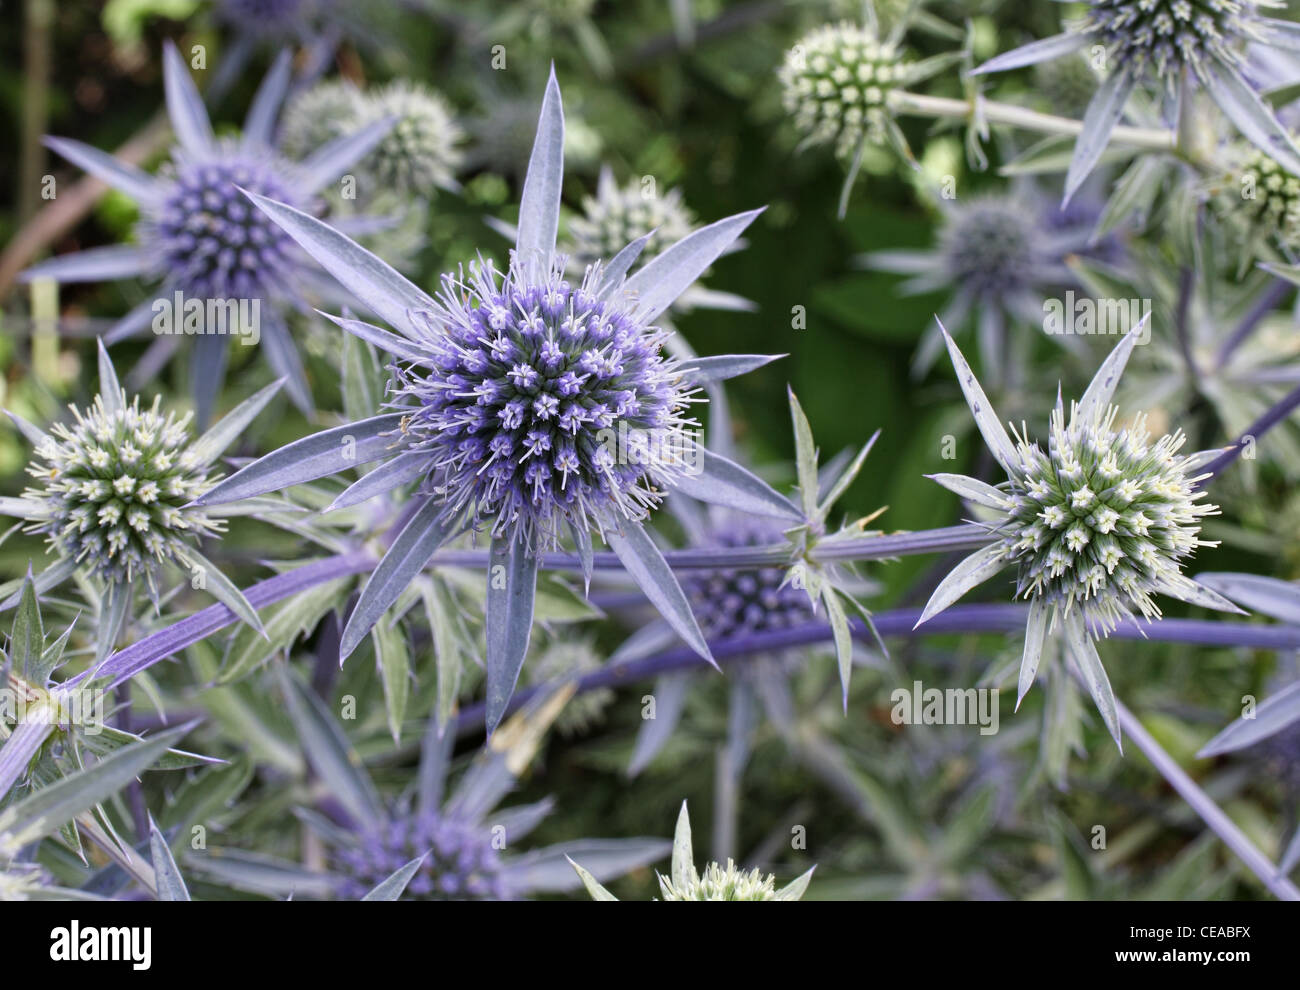 Unique Purple And Blue Spiky Flowers Growing In A Patch Stock Photo